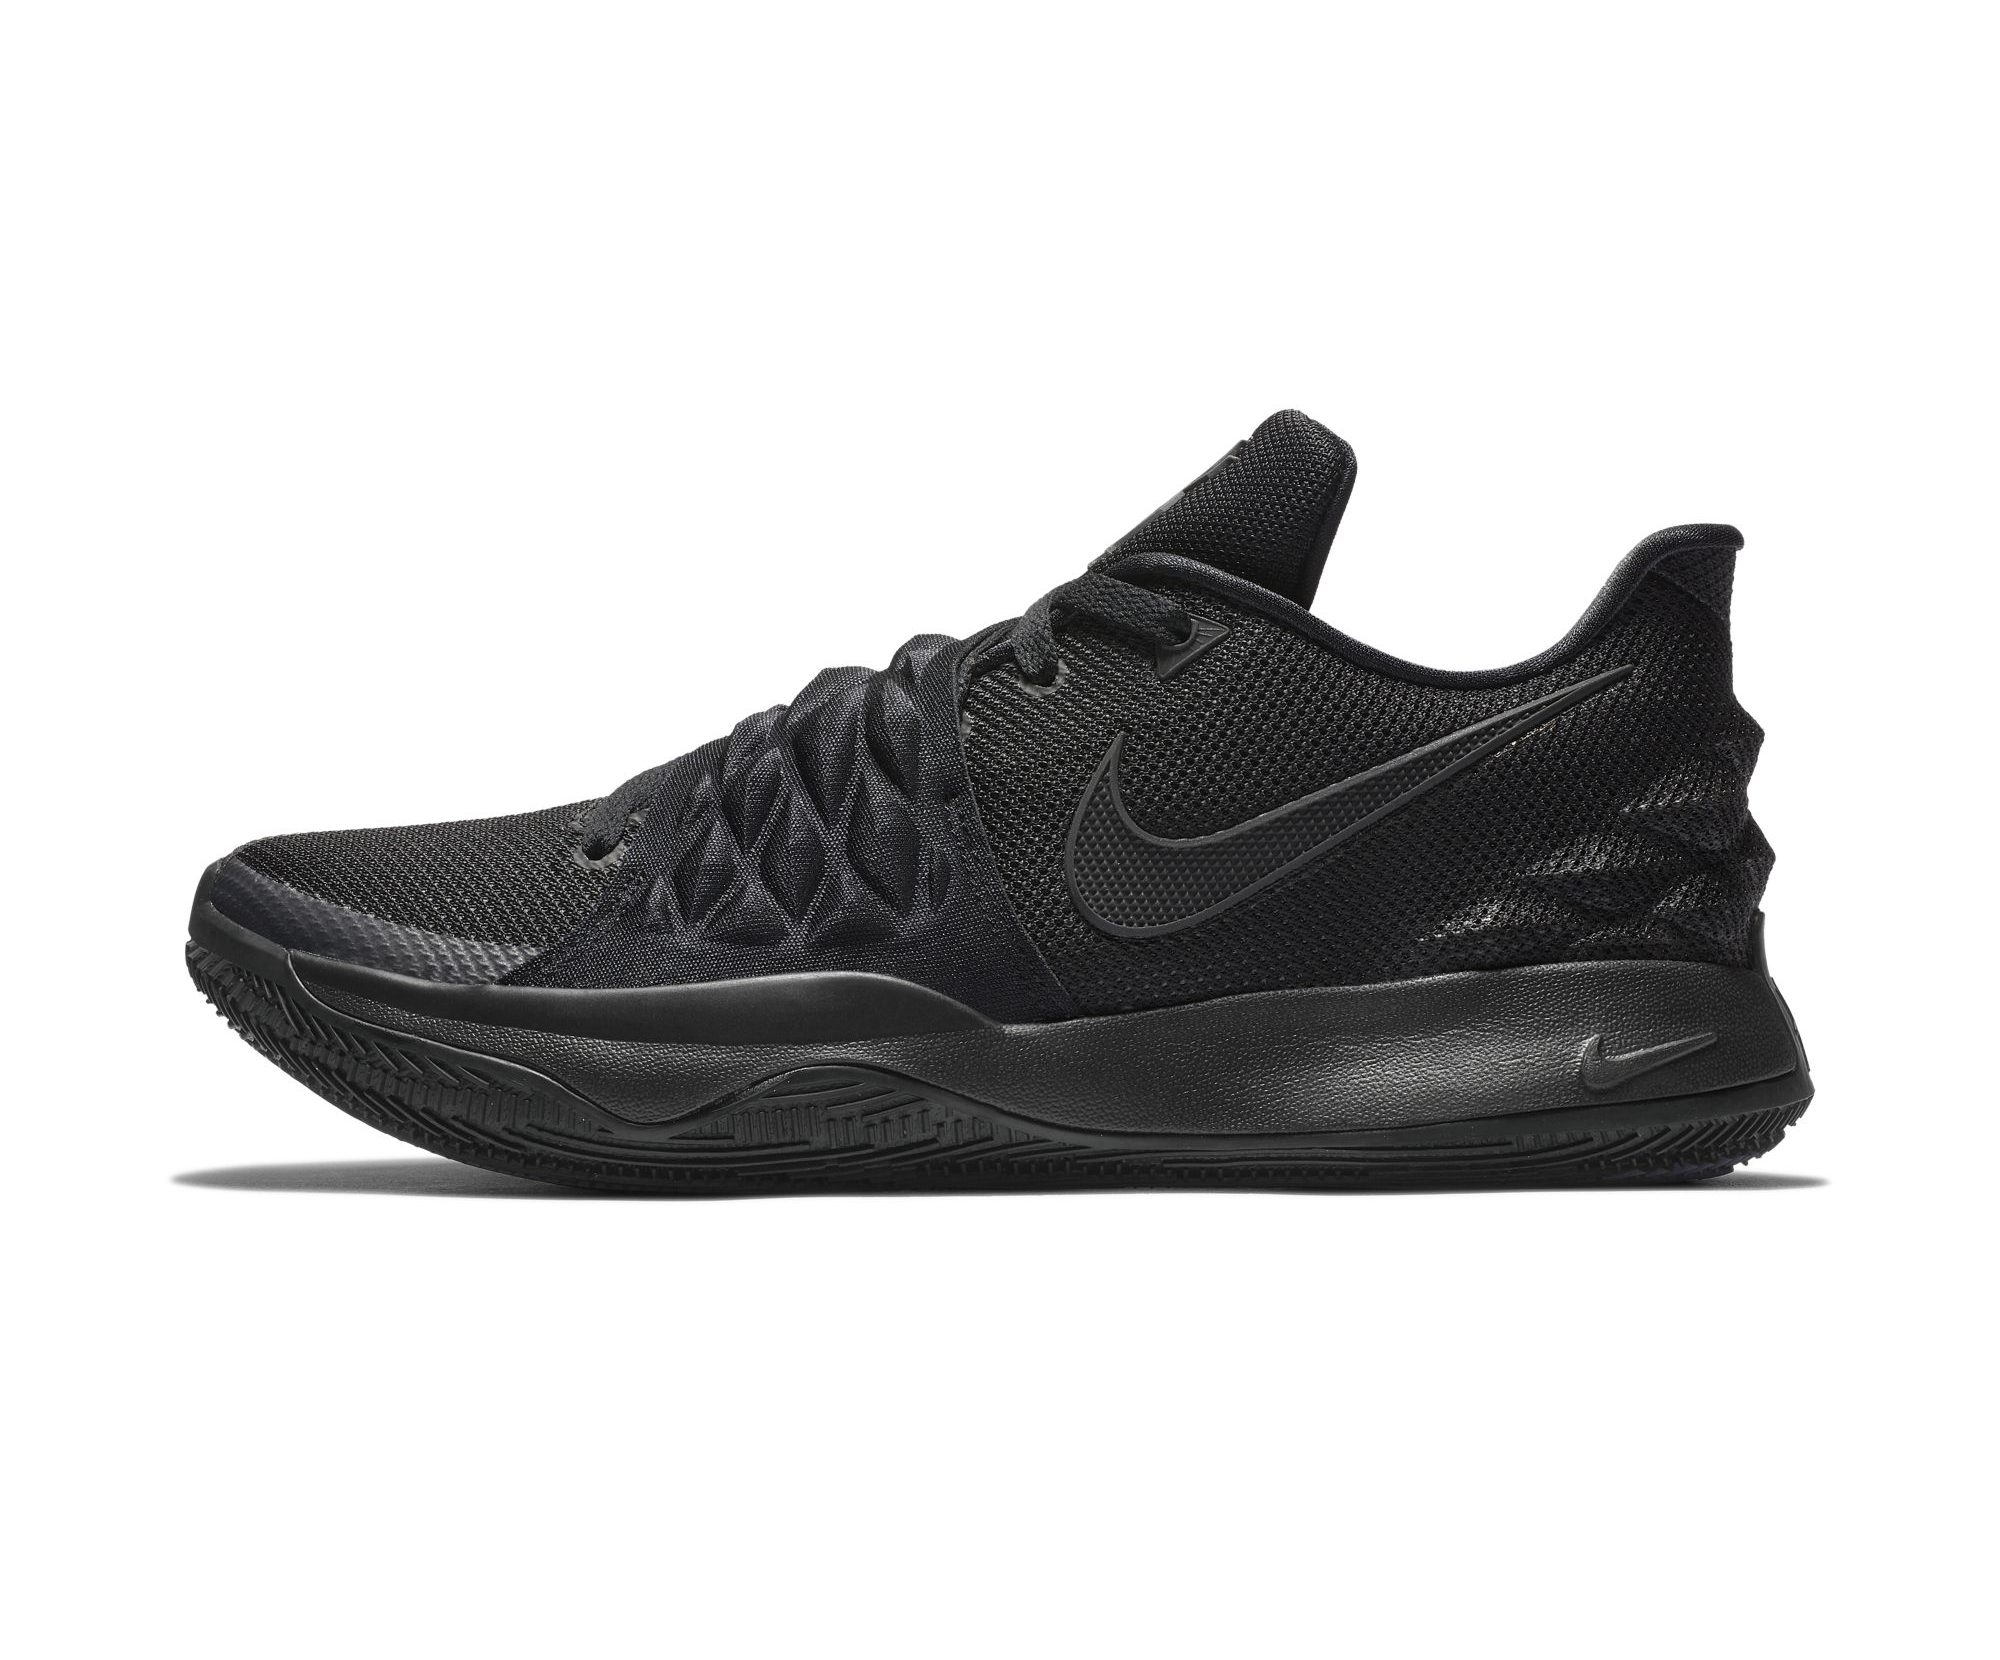 brand new b183a 09ff5 Nike Kyrie Low 'Triple Black' is Dropping Soon - WearTesters